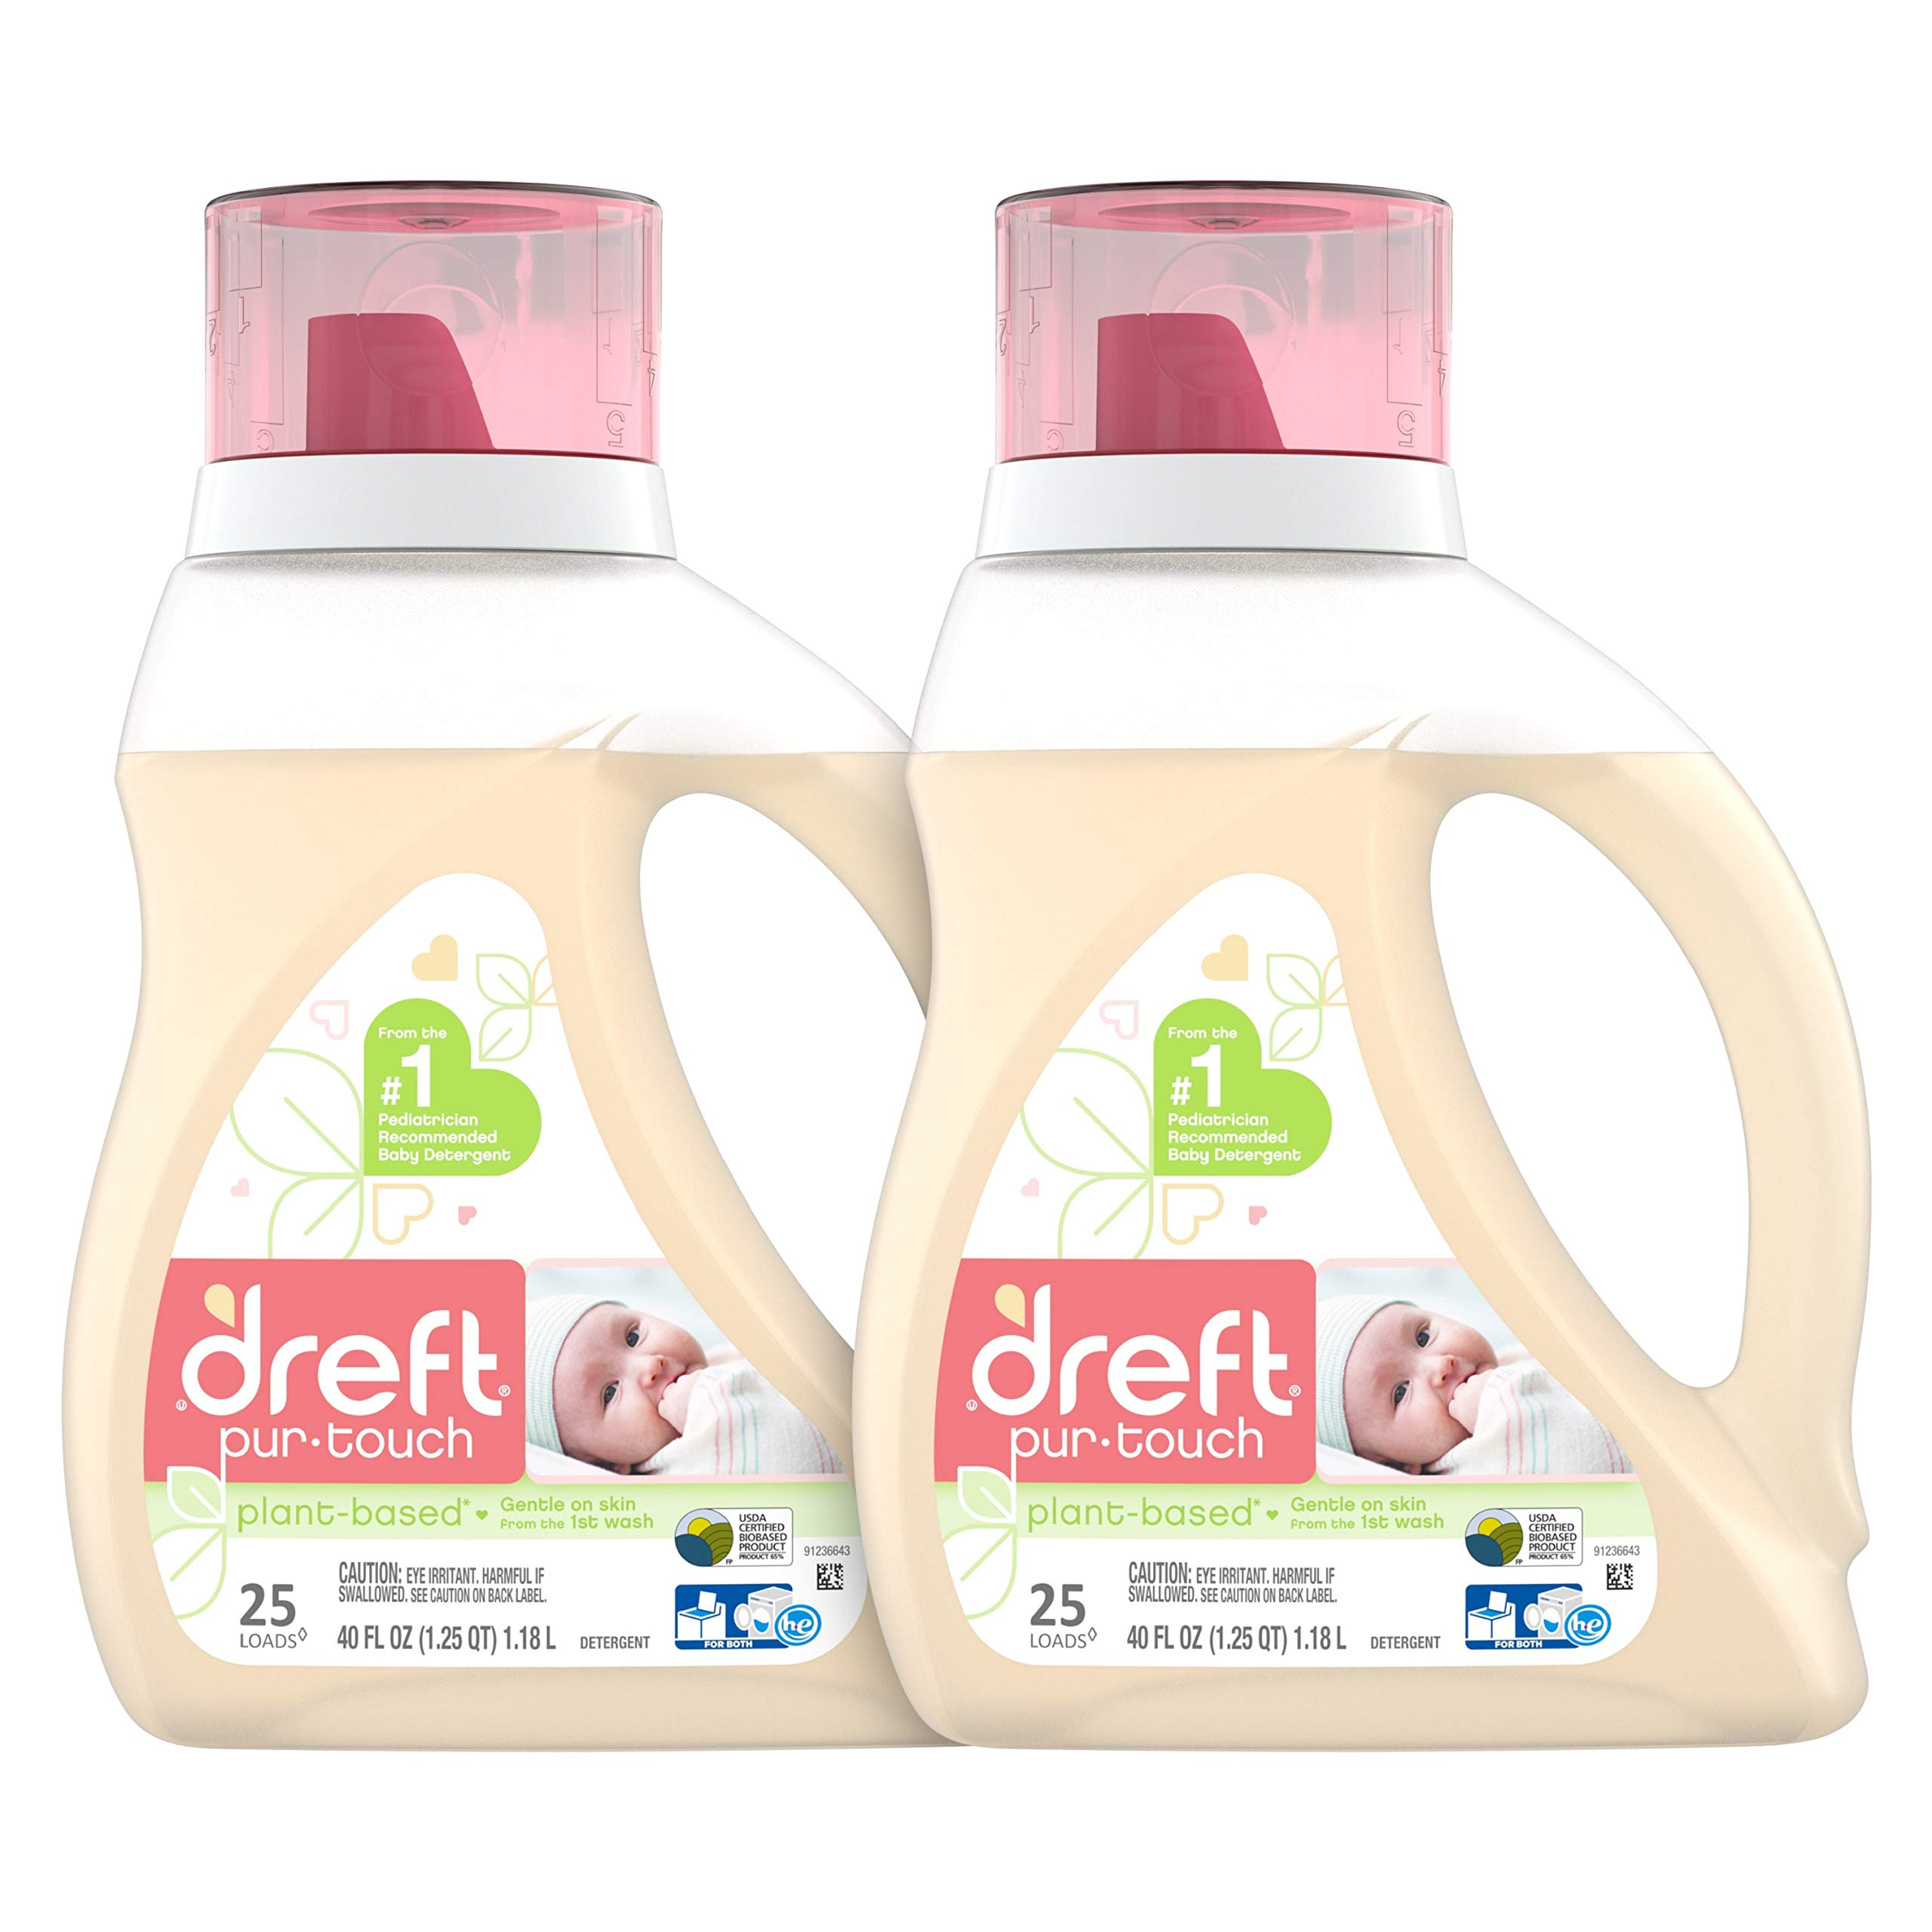 Dreft Purtouch Baby Liquid Laundry Detergent, Hypoallergenic for Baby, Infant or Newborn, 40 Fl. Oz (Pack of 2) (Packaging May Vary) by Dreft